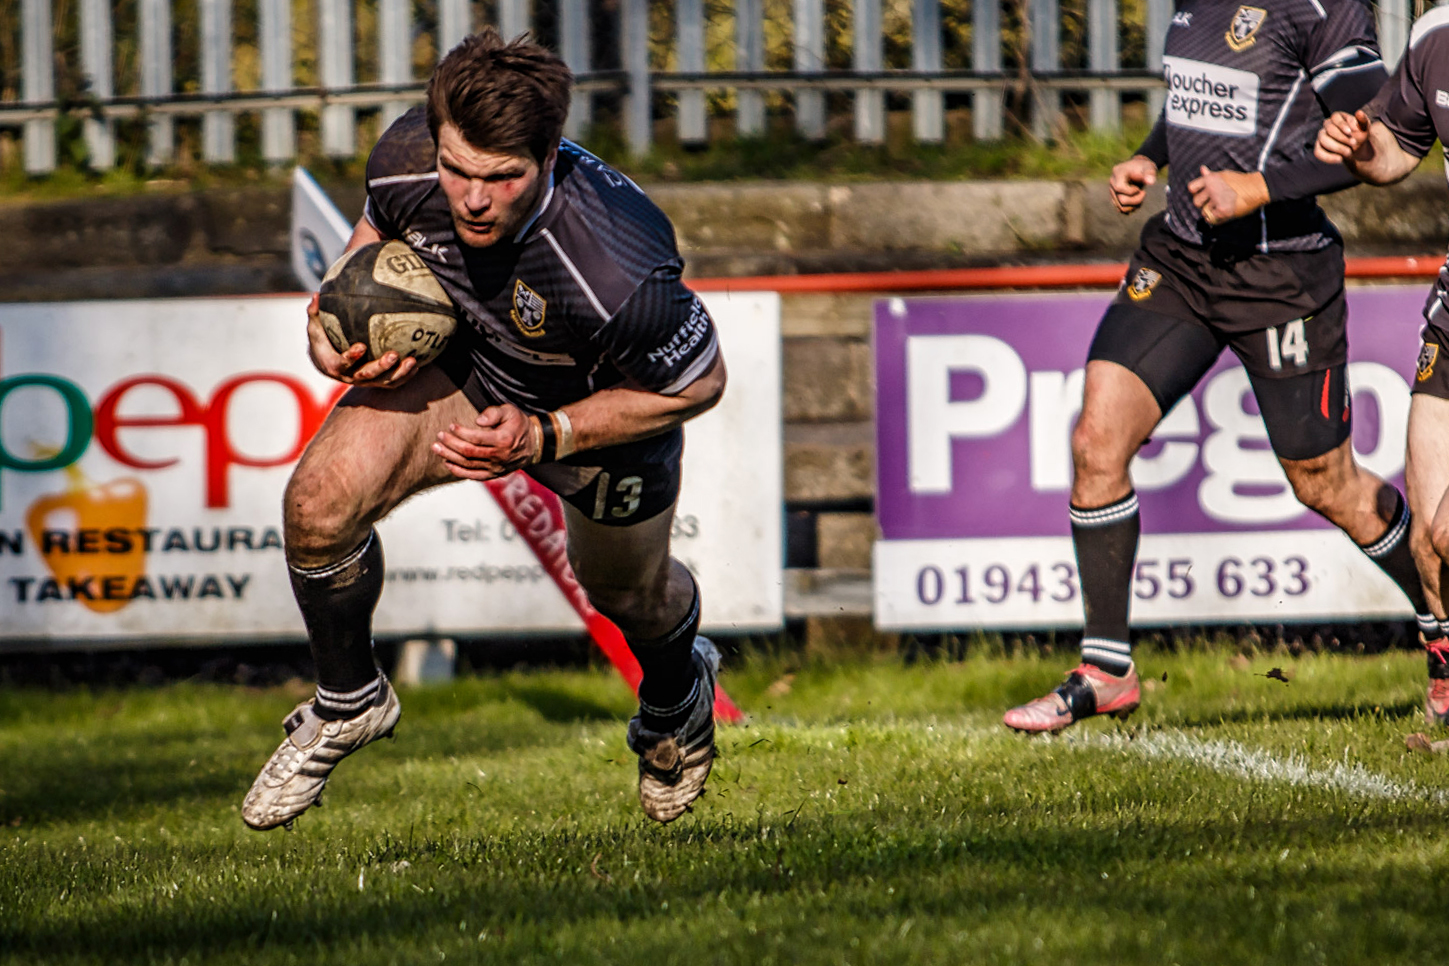 Otley's Michael Coady prepares to touch down